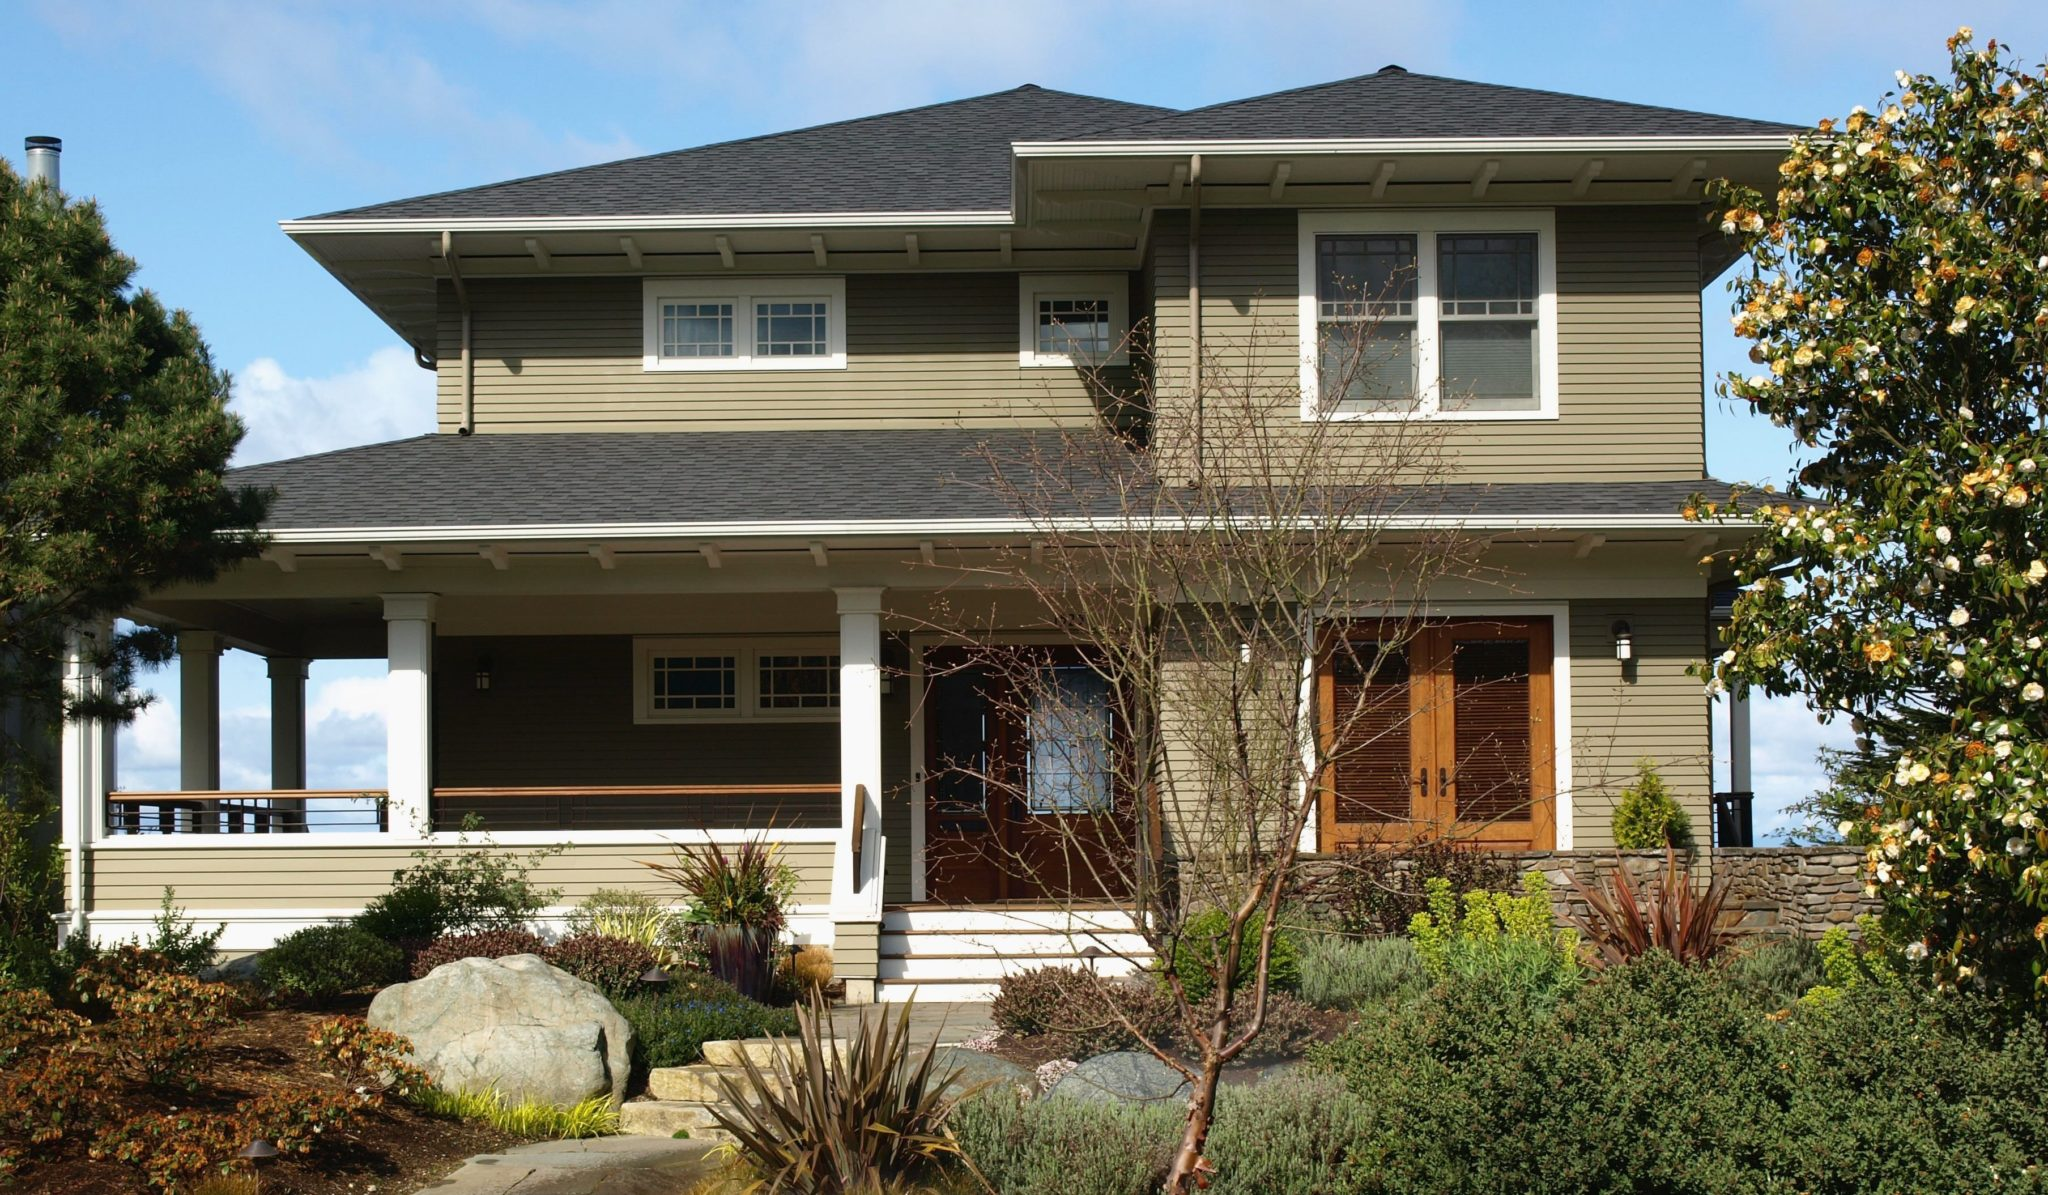 Traditional New Craftsman House - Seattle Architects - CTA Design Builders - Transitional, New Home